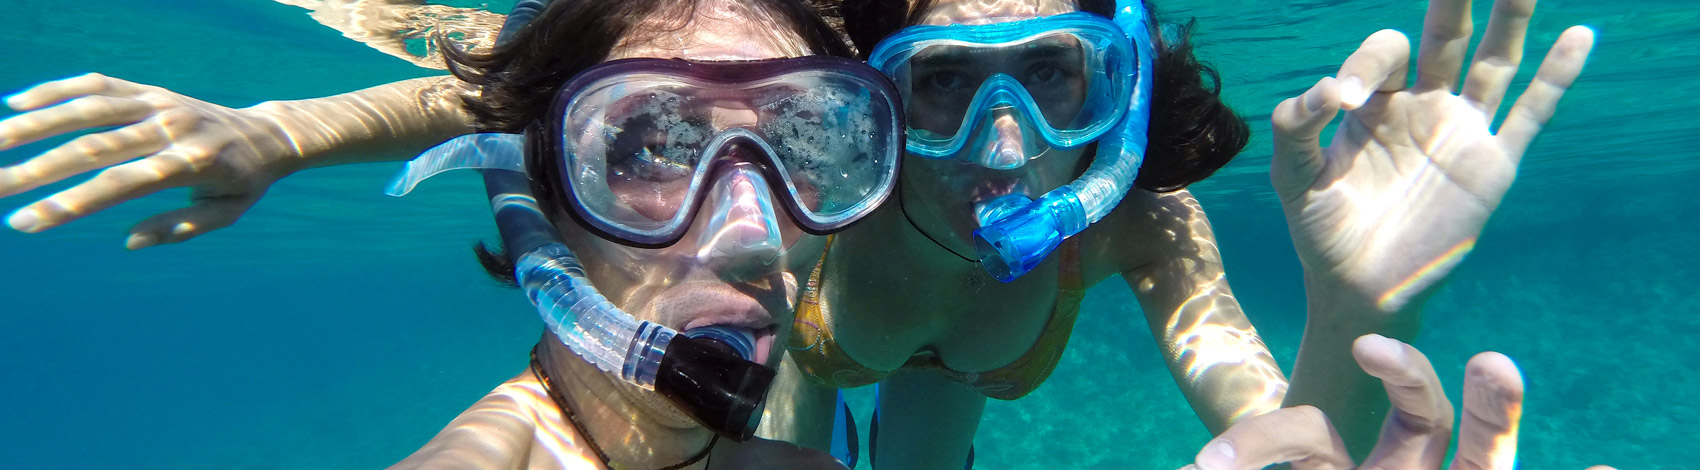 Guide to the best things to do in Cancun Quintana Roo, Mexico